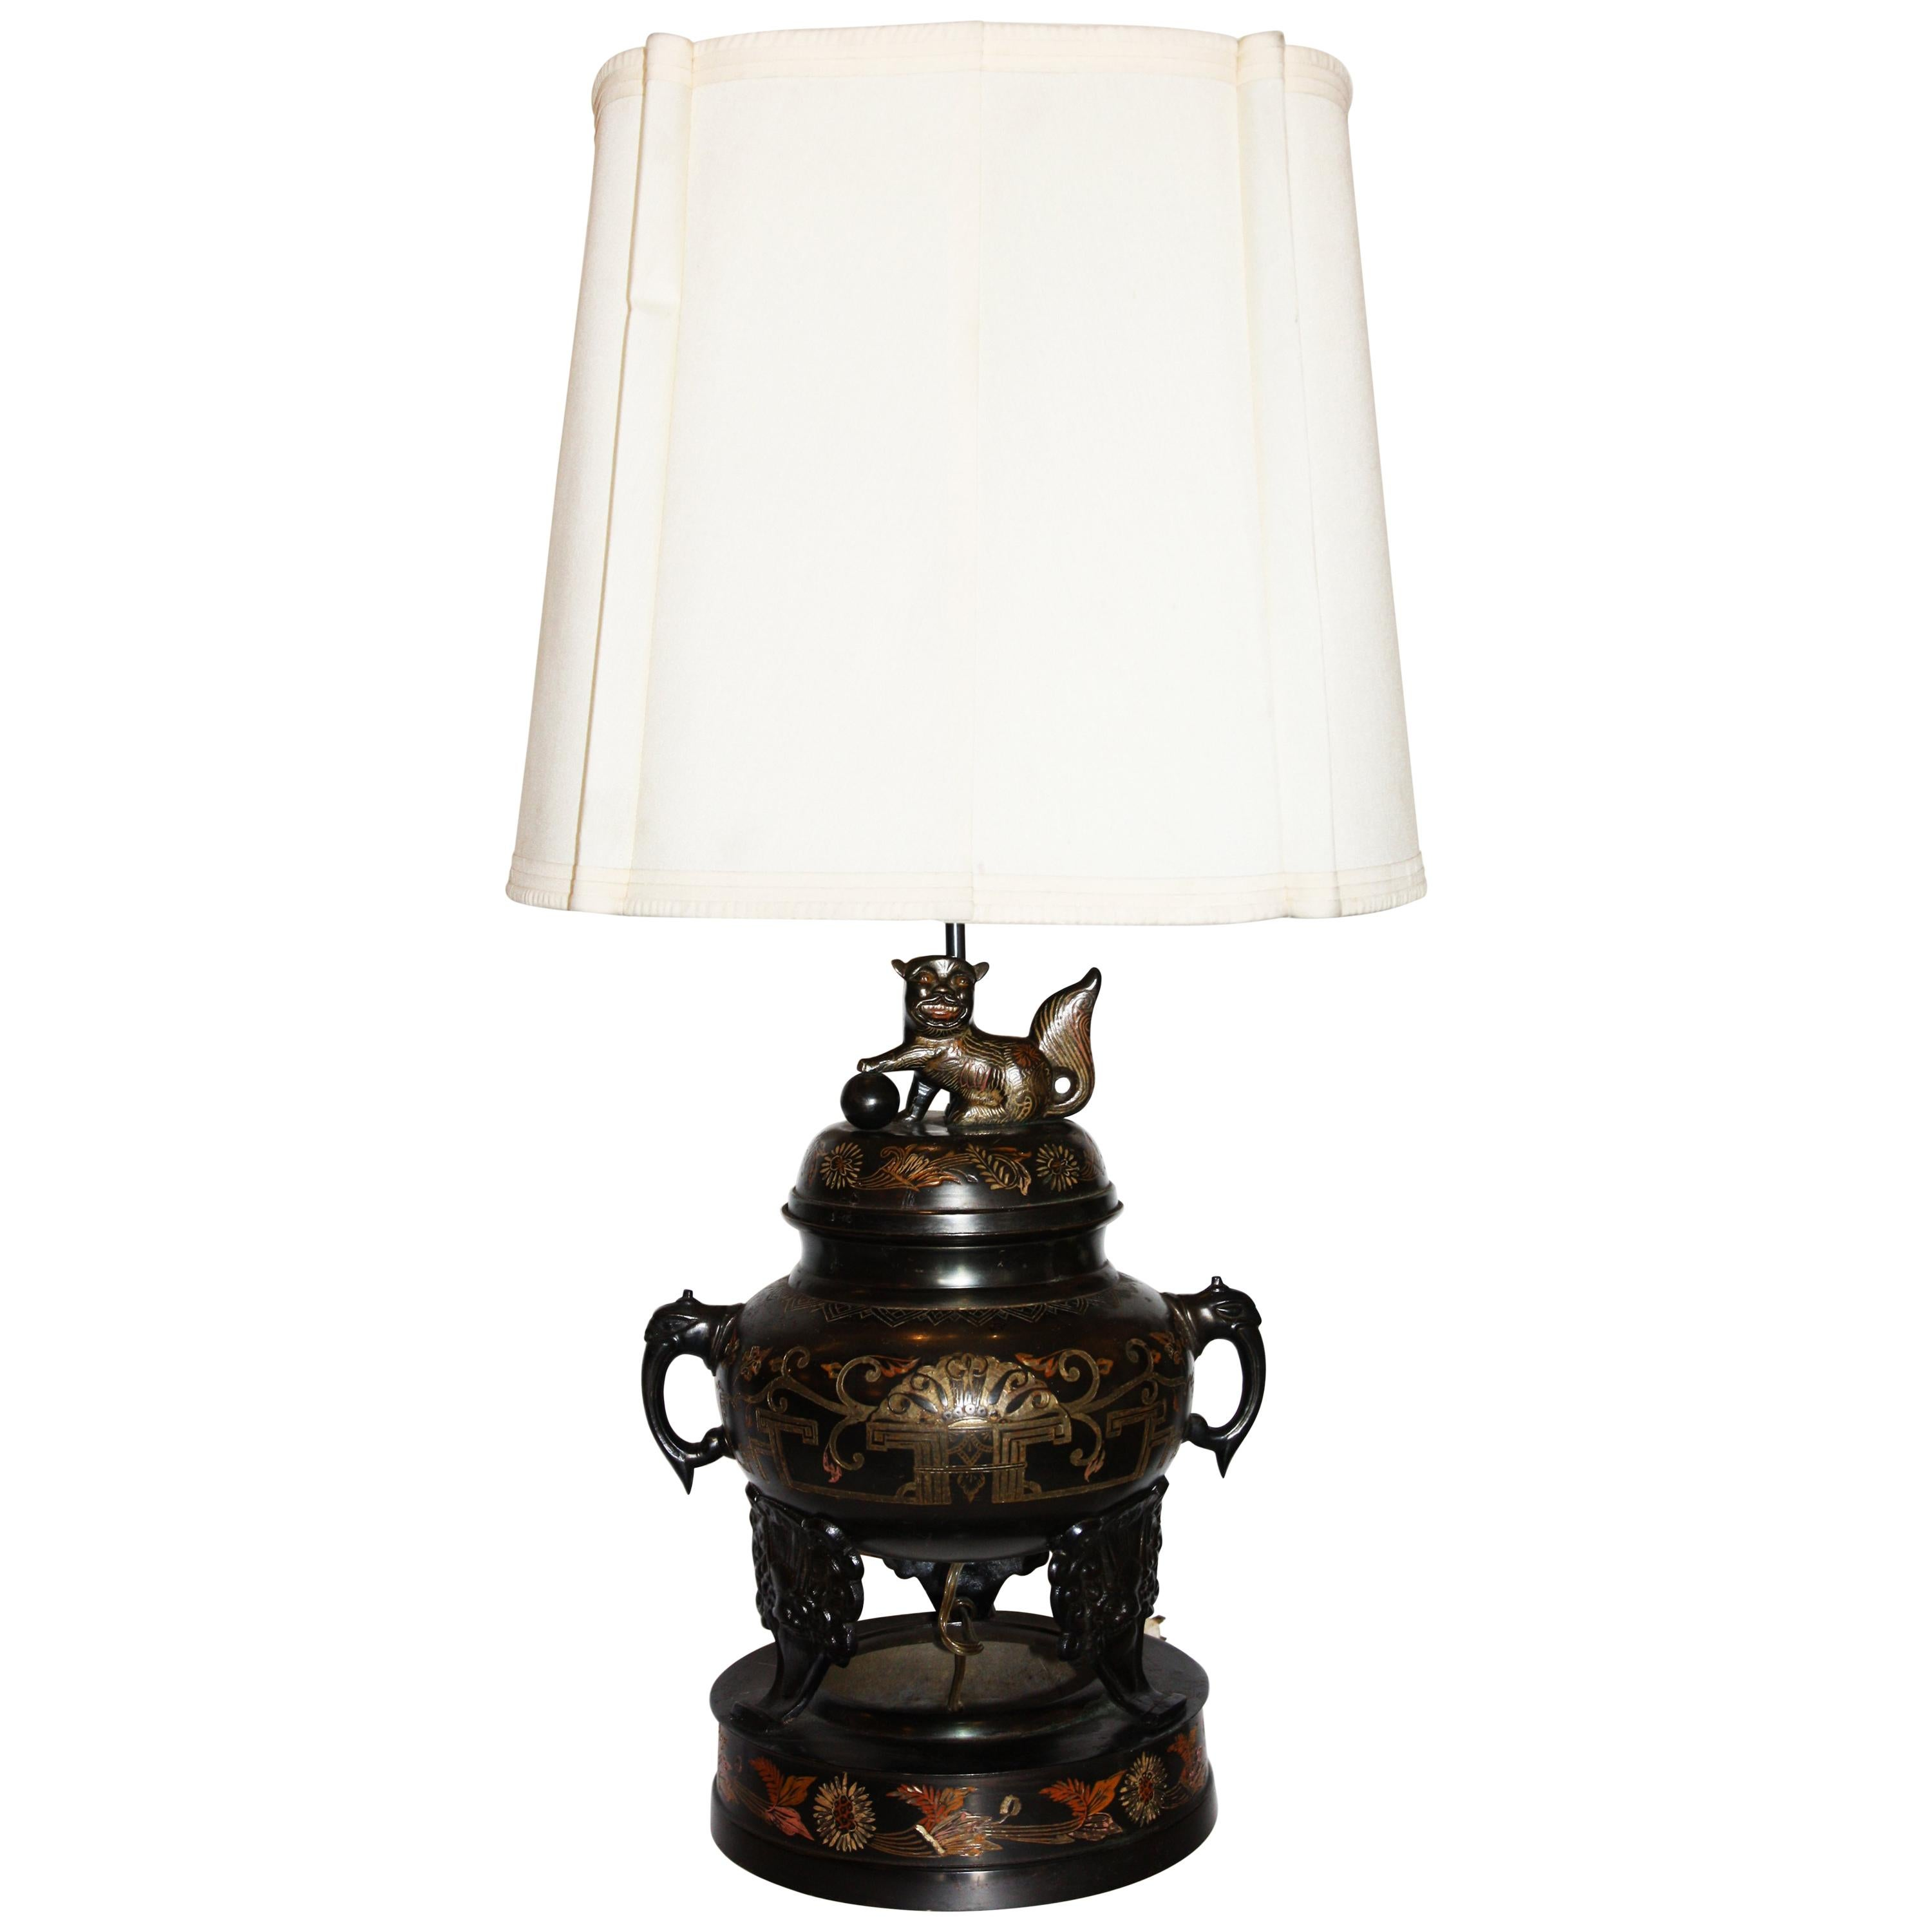 Vintage Bronze Marbro Urn Lamp with Makers Stamp